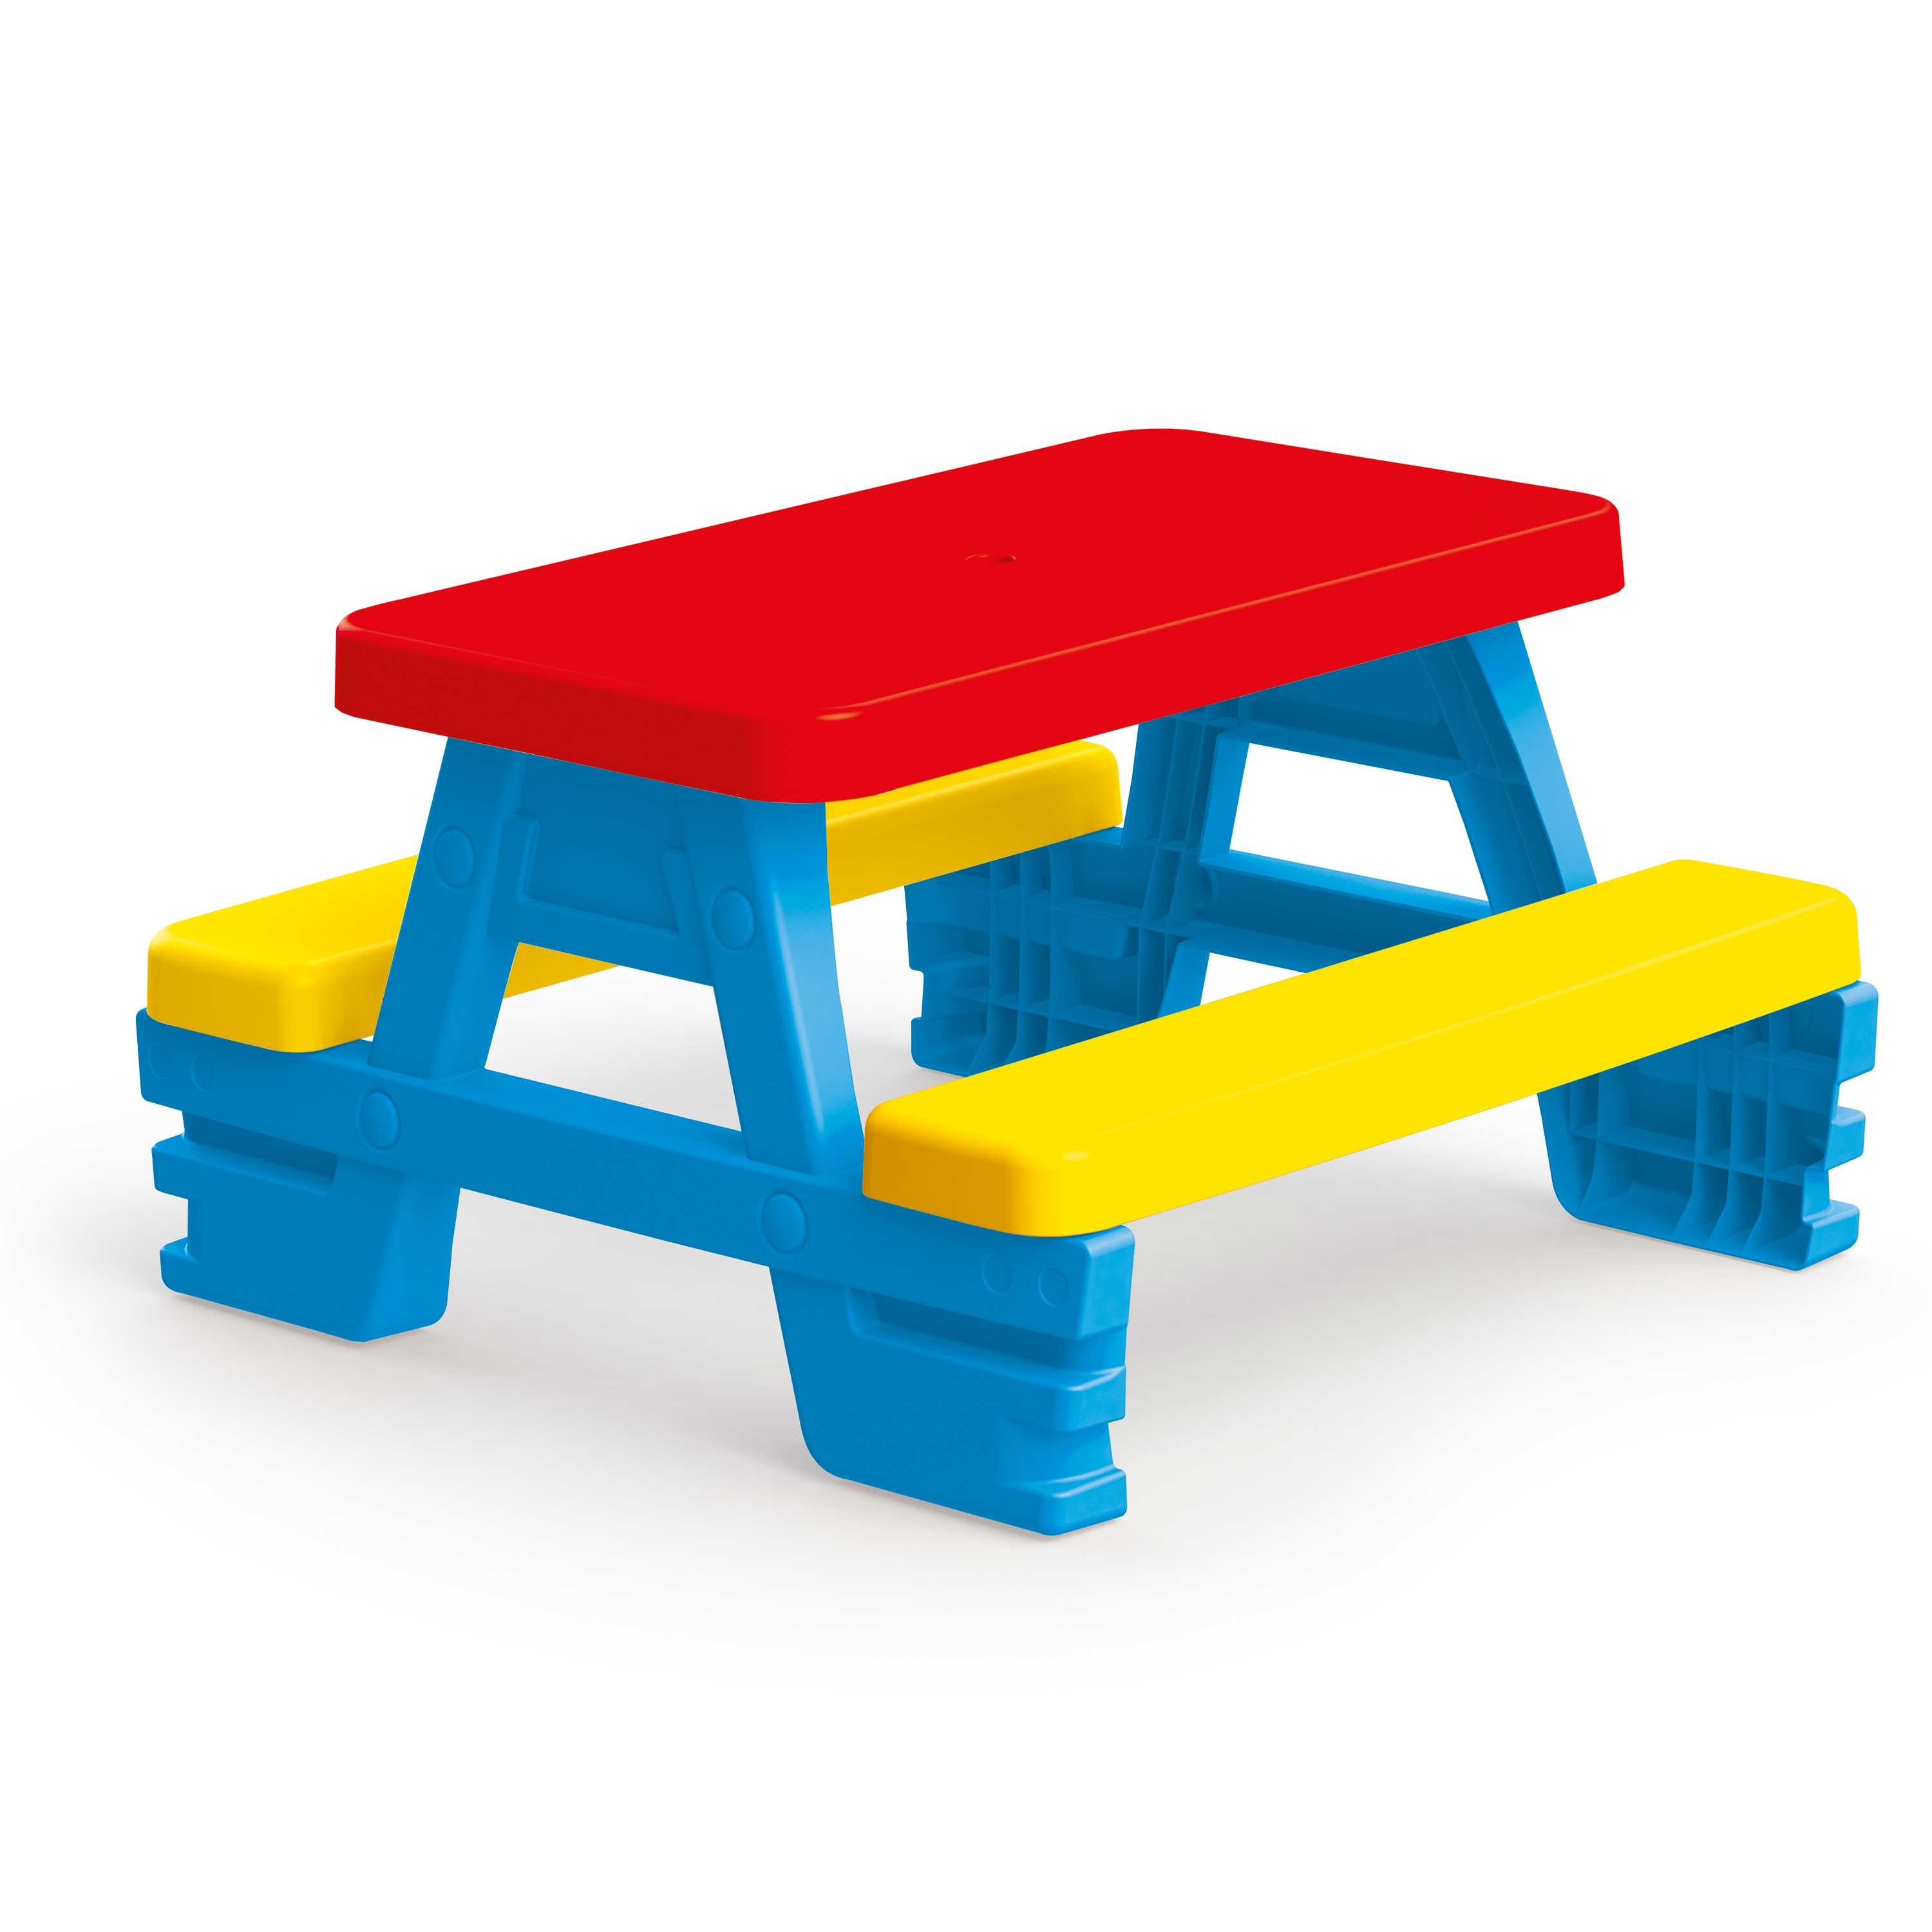 Marvelous Details About Childrens Outdoor Colourful Picnic Table For 4 Bench Set Furniture Garden Seat Short Links Chair Design For Home Short Linksinfo